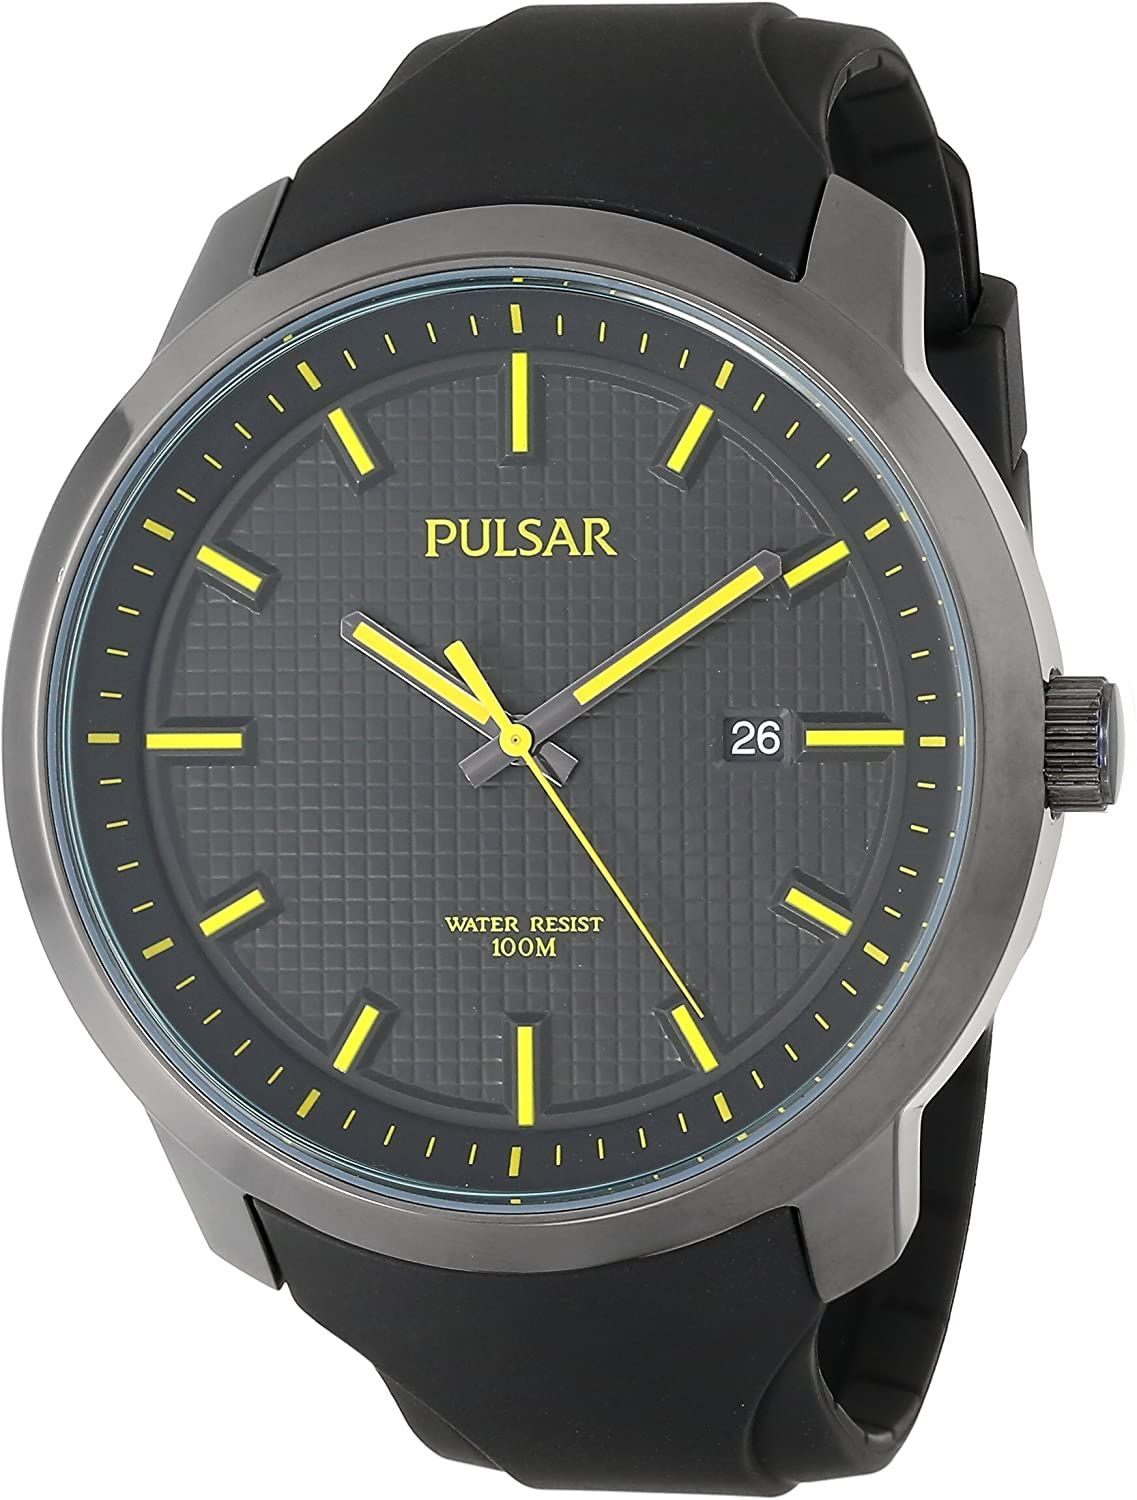 Pulsar Watch PS9101 Mans Black w/Yellow Luminous Hands, Rubber Strap.Retail $135